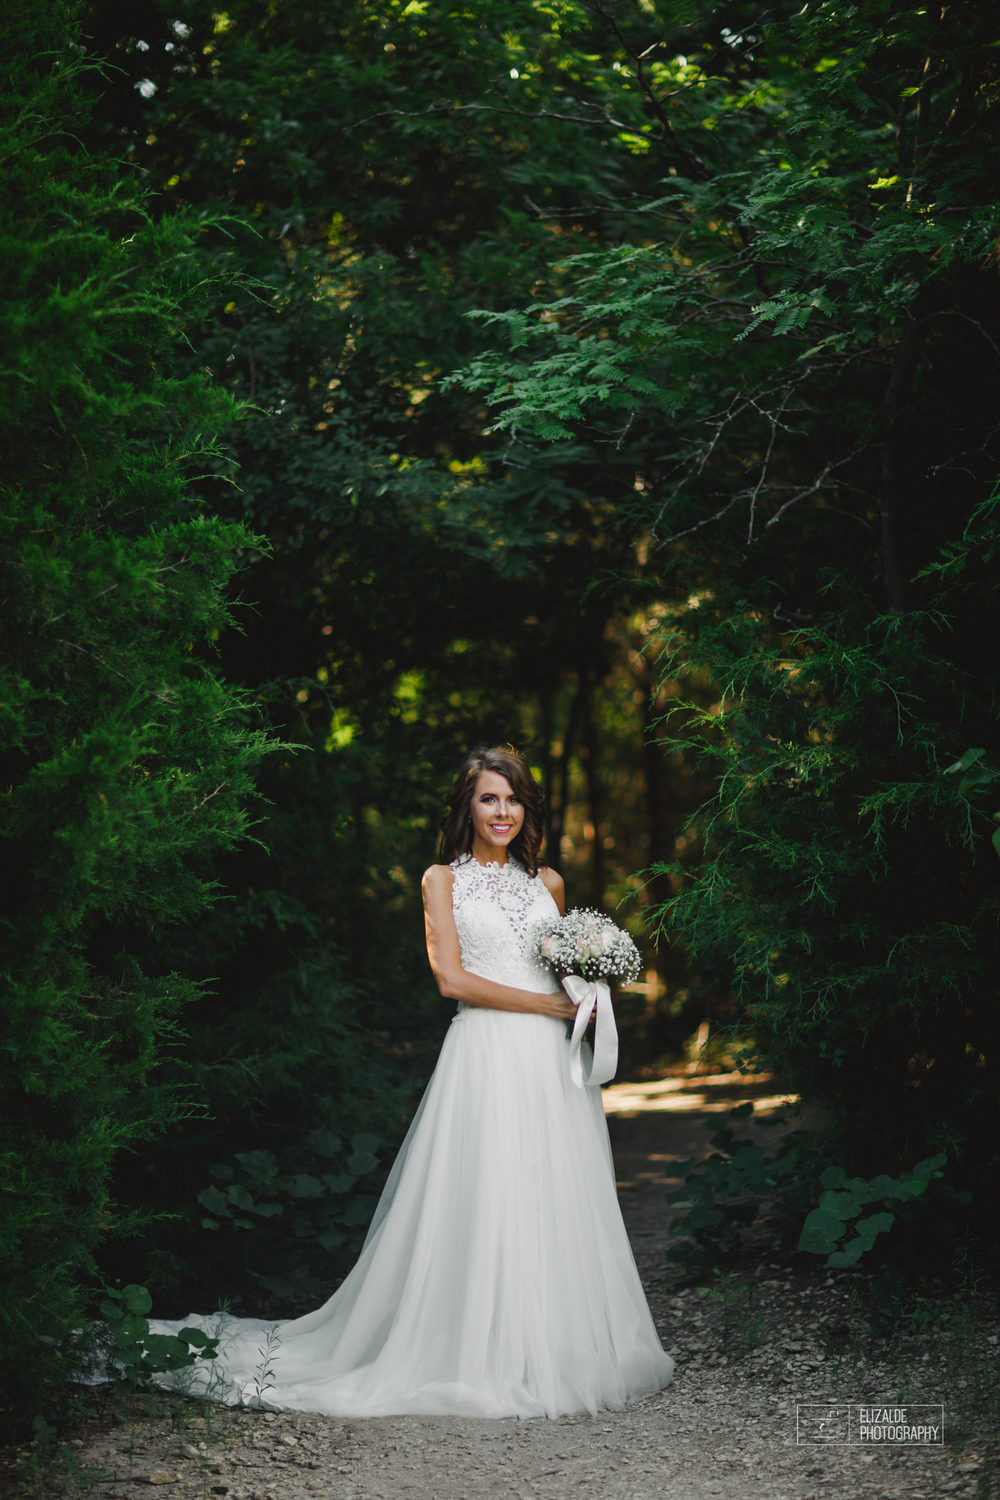 Bridal session_Dallas Photographer_Elizalde Photography_Denton photographer_ DFW Photographer_ Wedding Photographer_Baleigh3.jpg